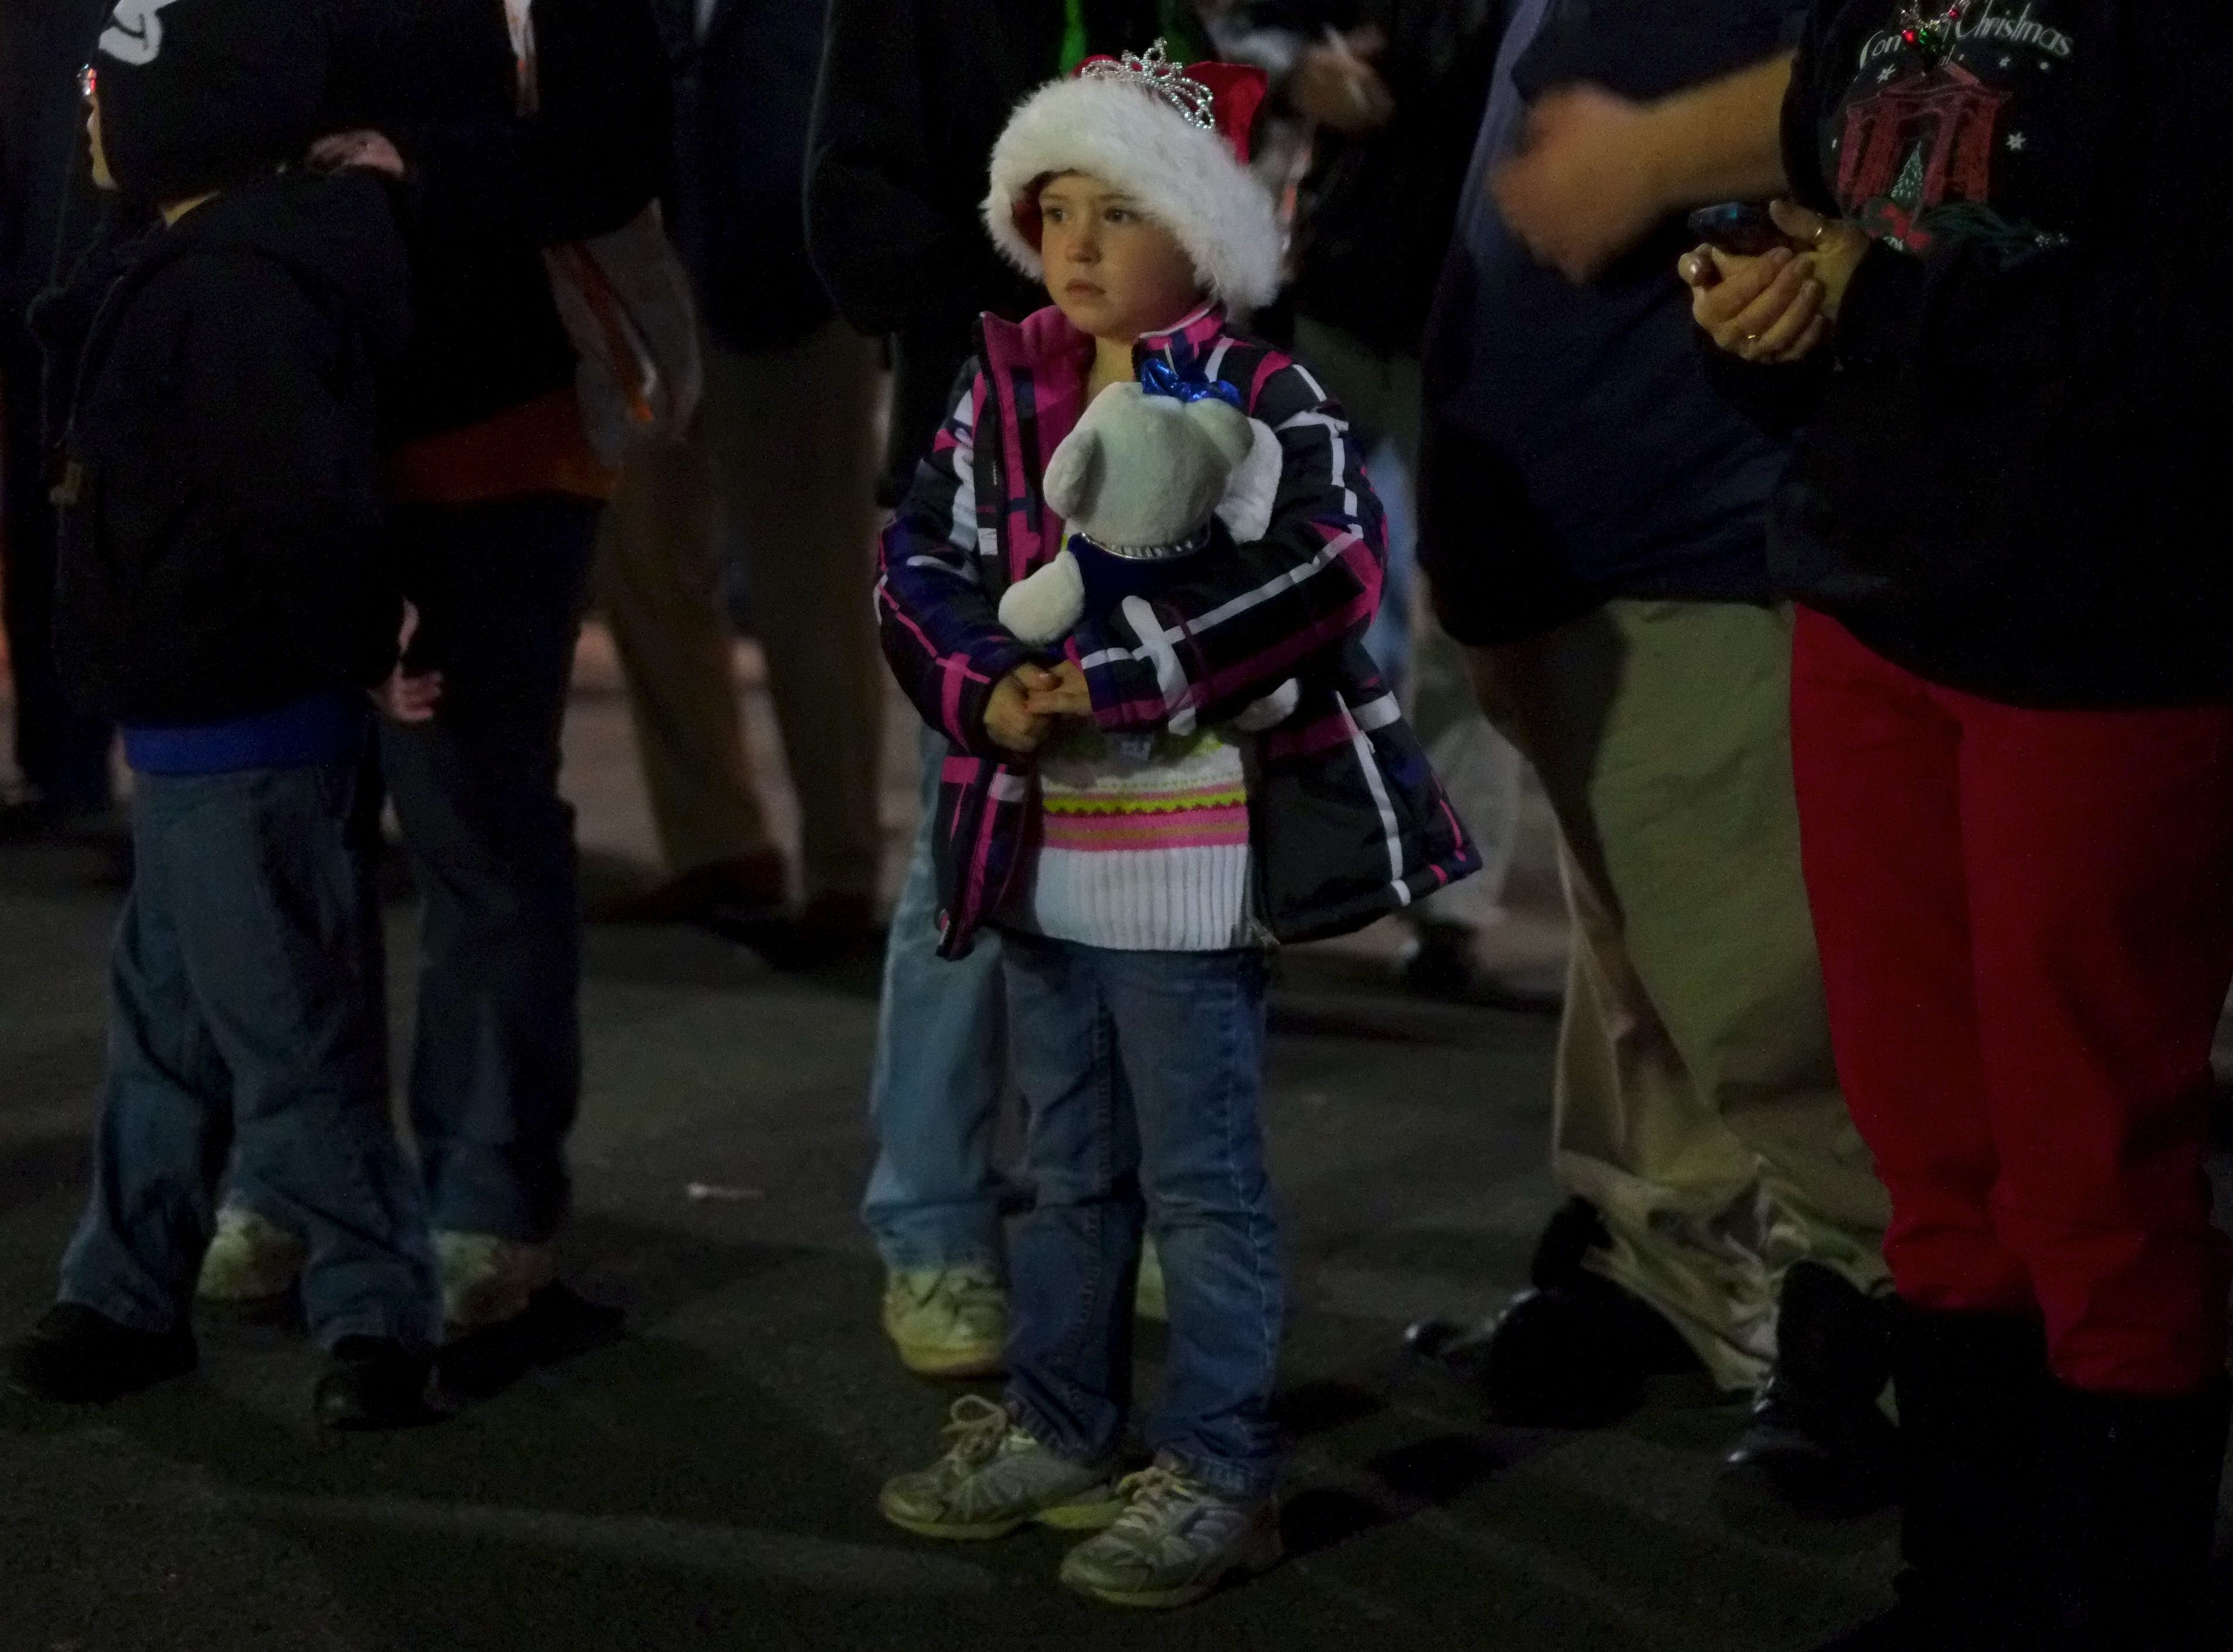 Jade Messamore, 5, center, waits for Santa to arrive on Friday, November 30, 2012 during Comcast Christmas at Chilhowee Park.